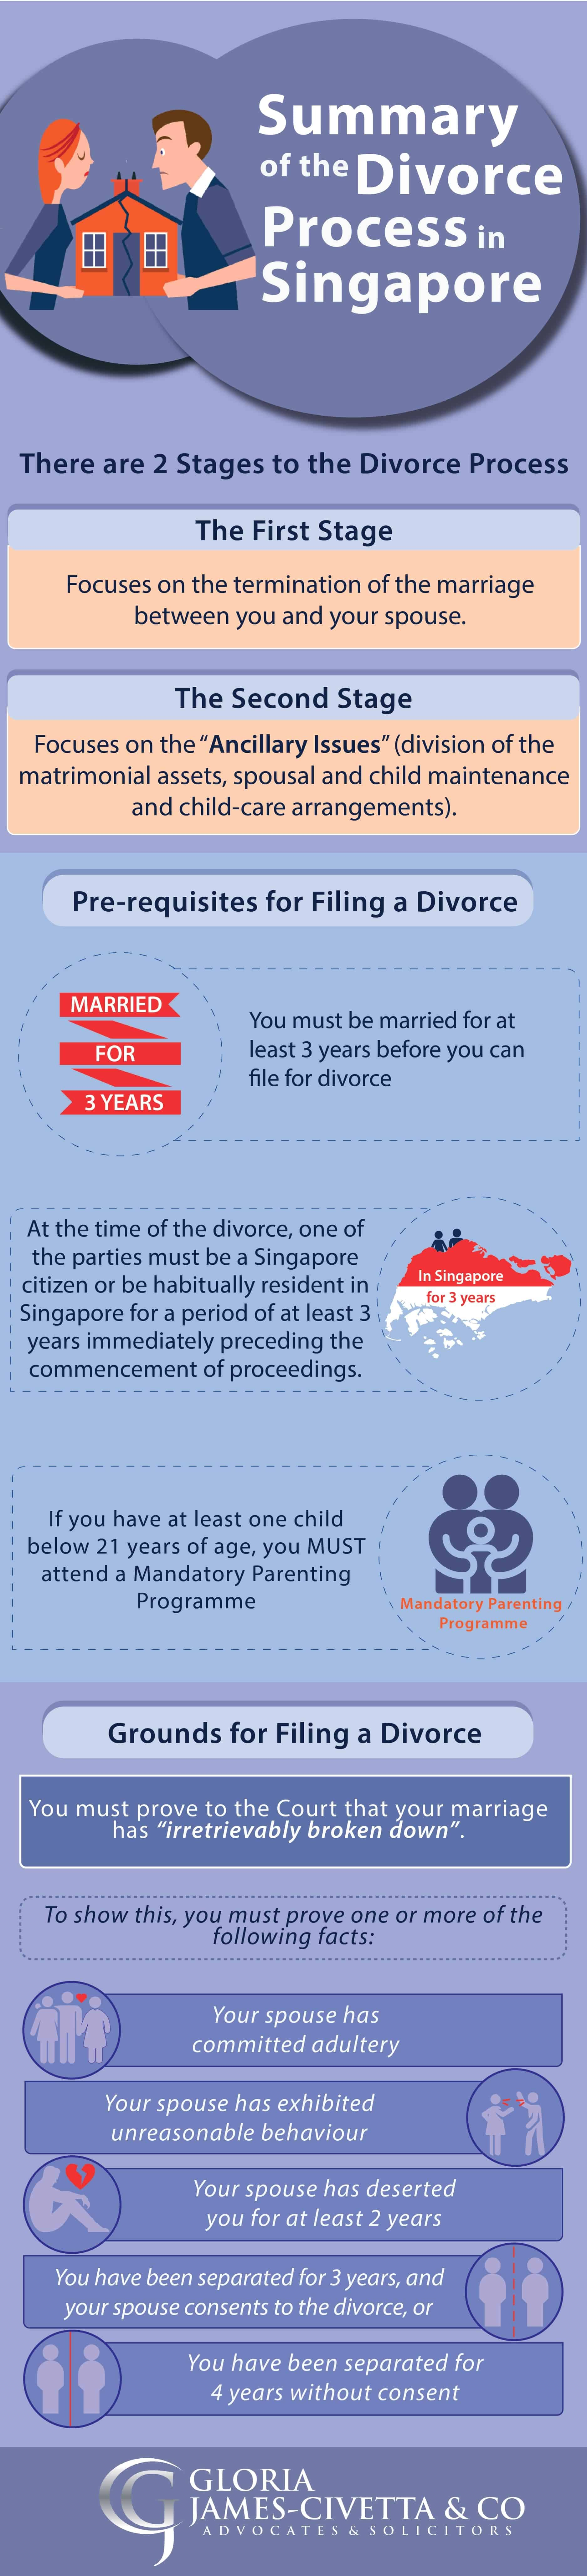 Summary of The Divorce Process in Singapore